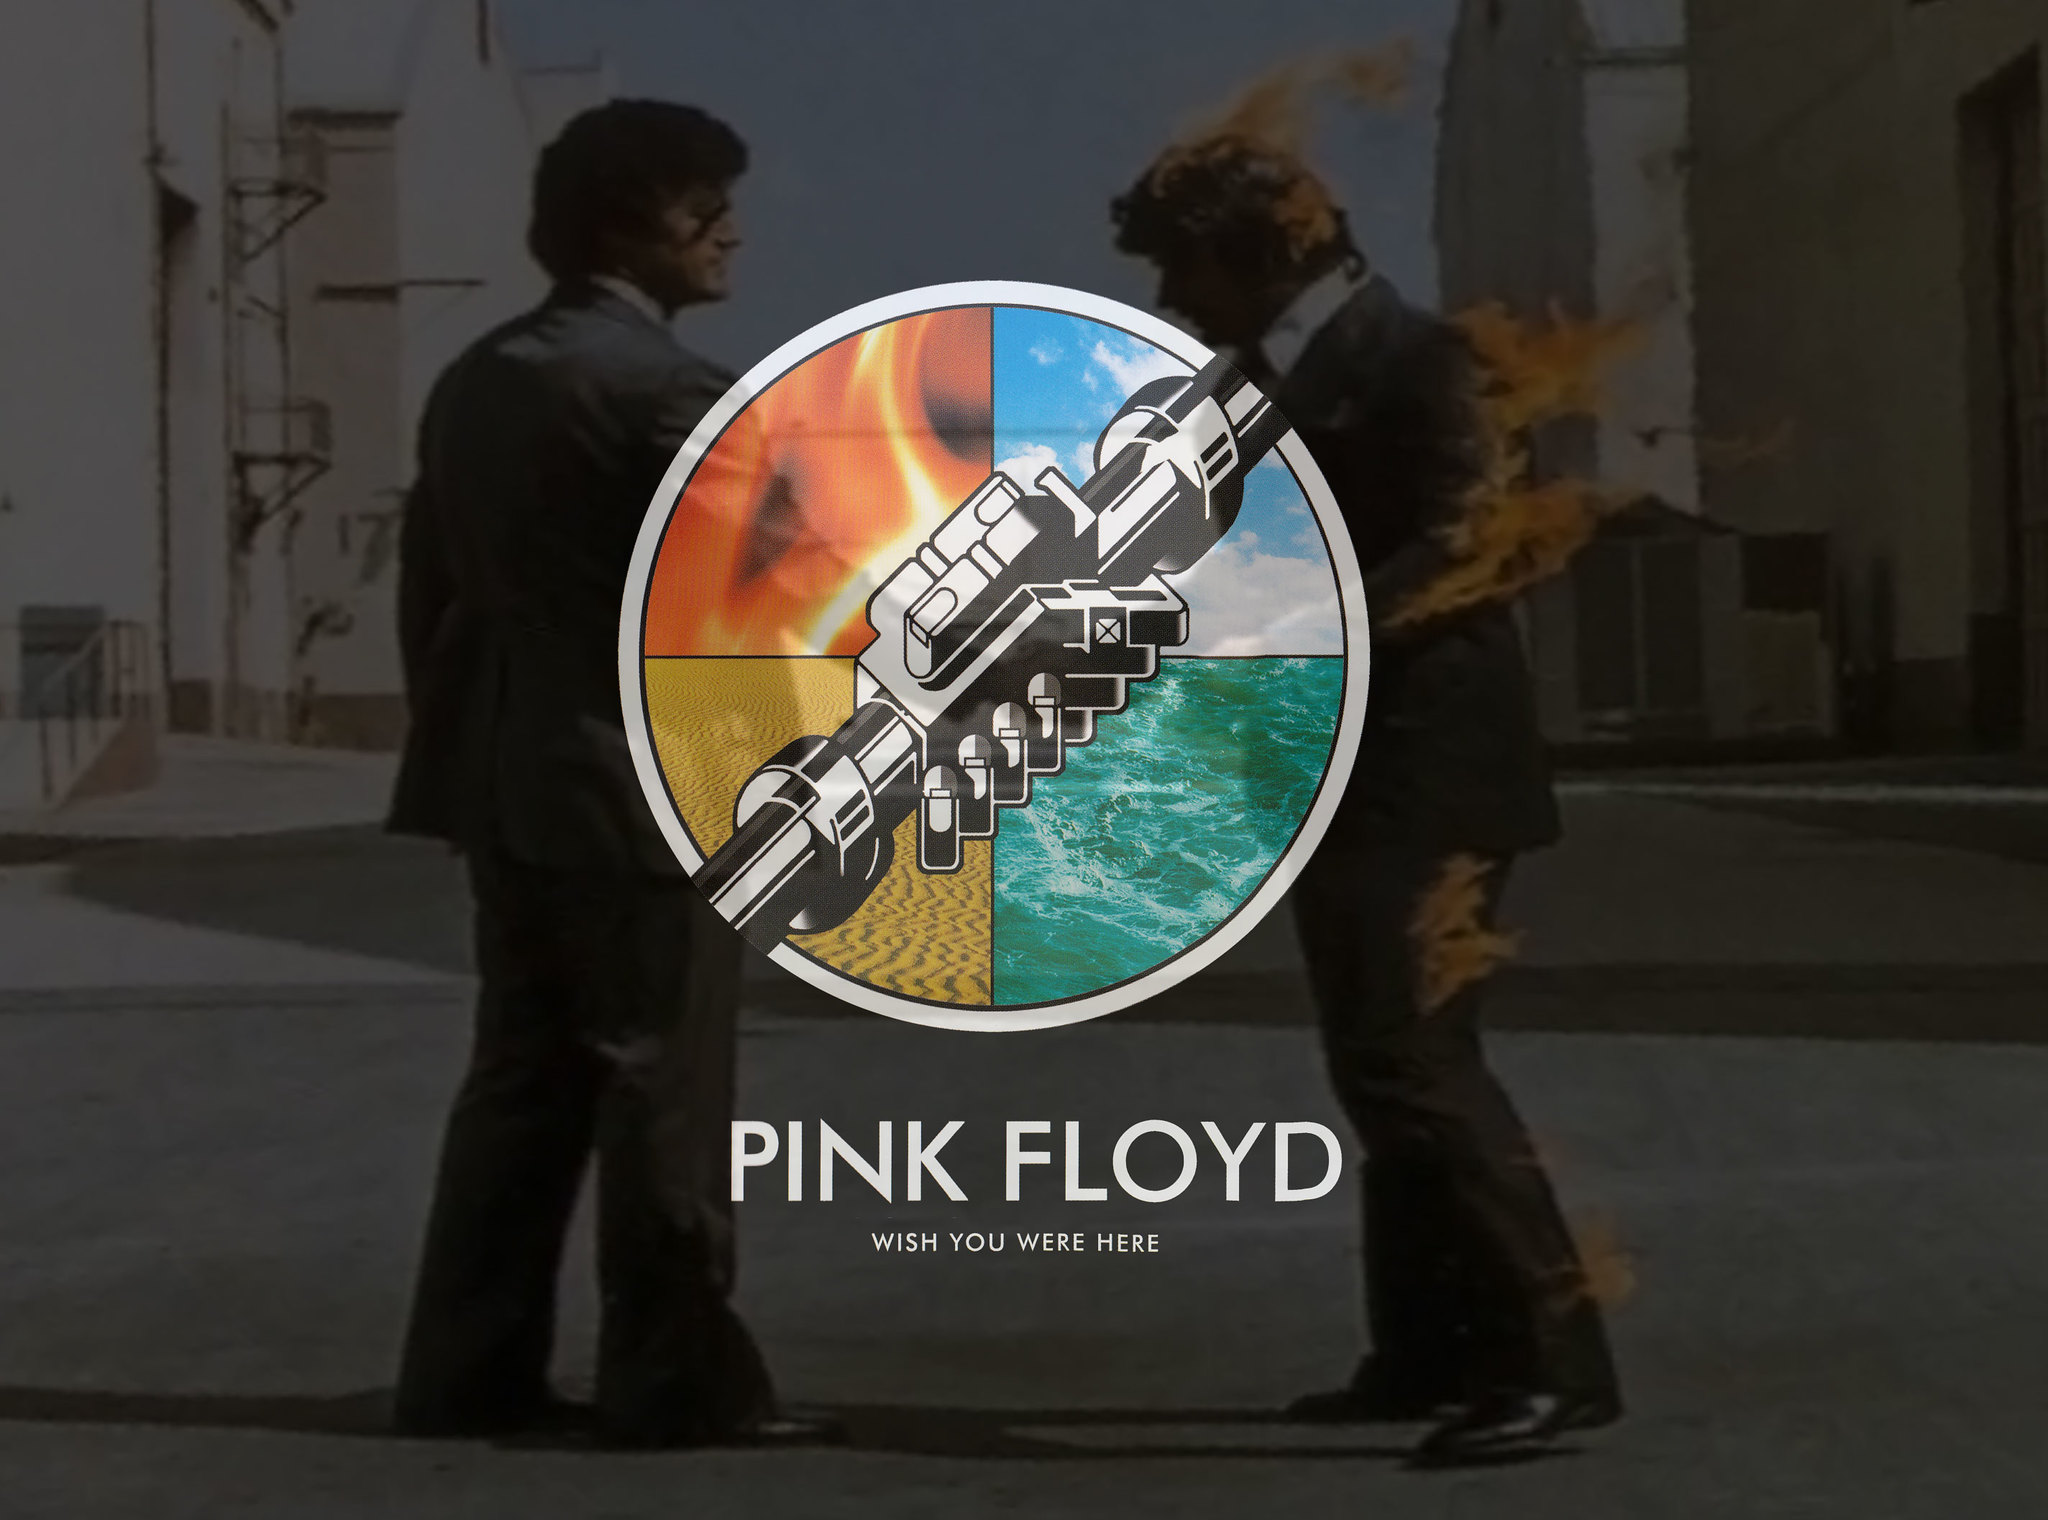 Pink Floyd Wish You Were Here Wallpaper | Flickr - Photo ...